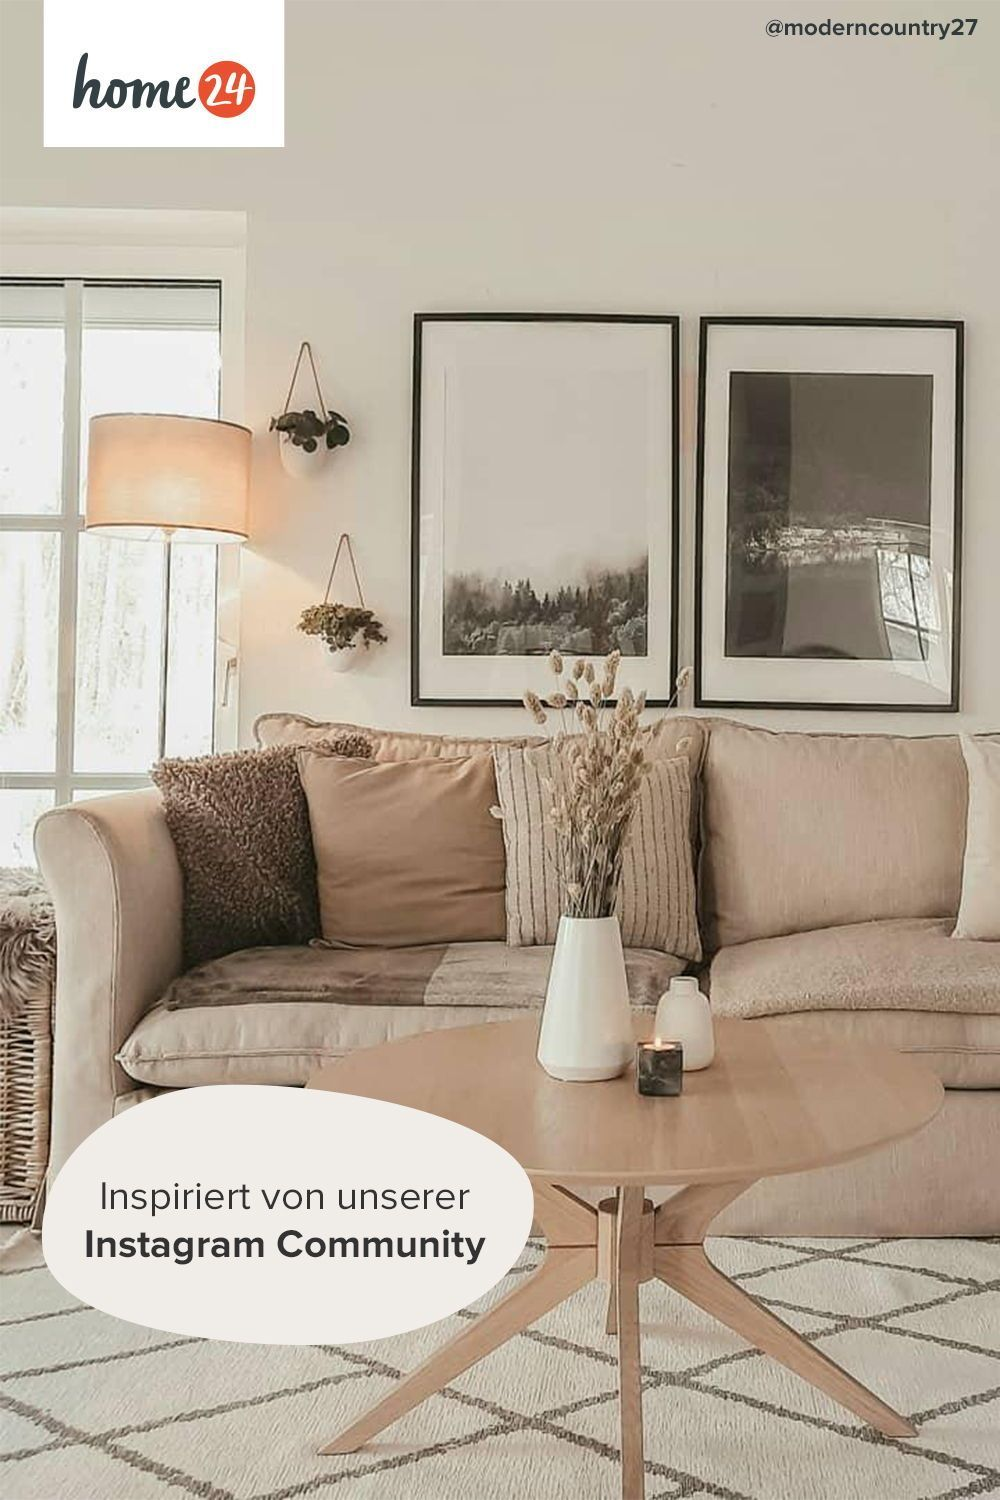 41 Landhausstil Ideas In 2021 Home Home Decor Furniture